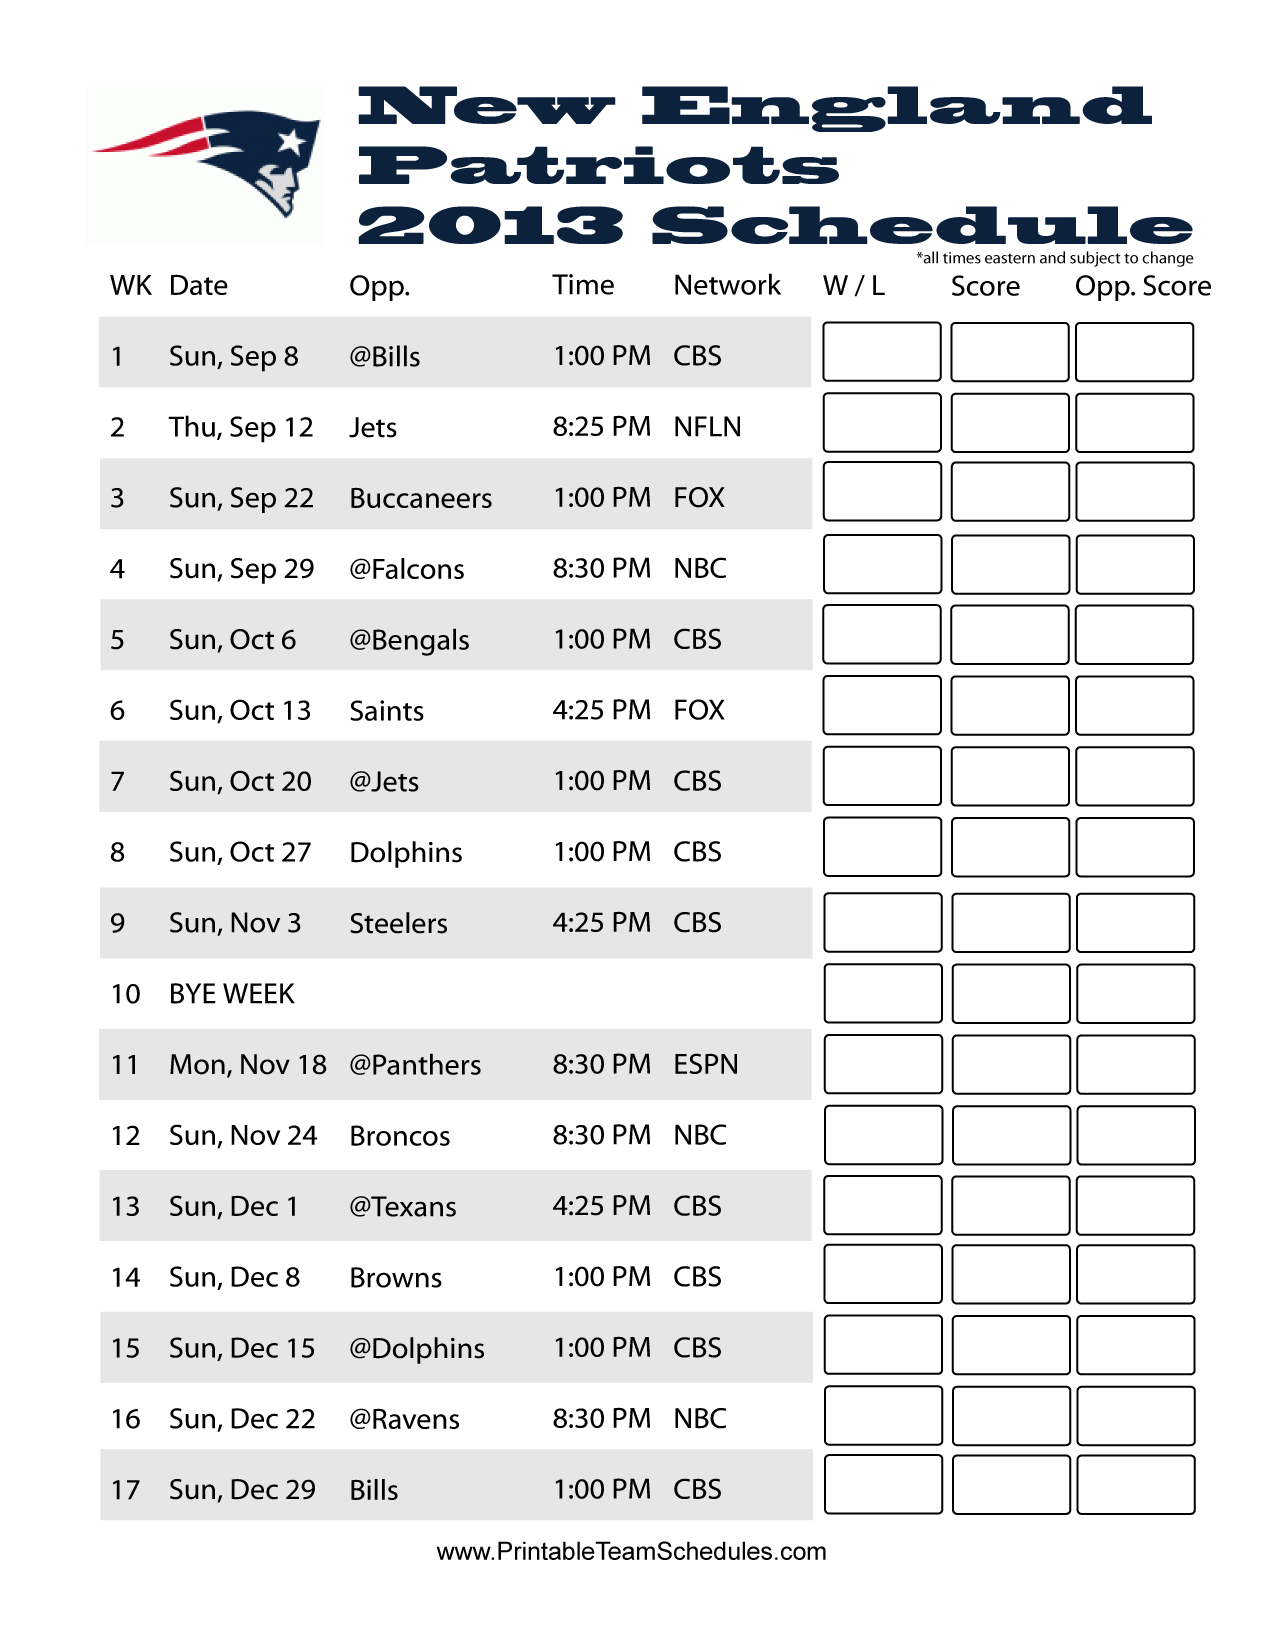 New England Patriots 2013 Schedule Game Day